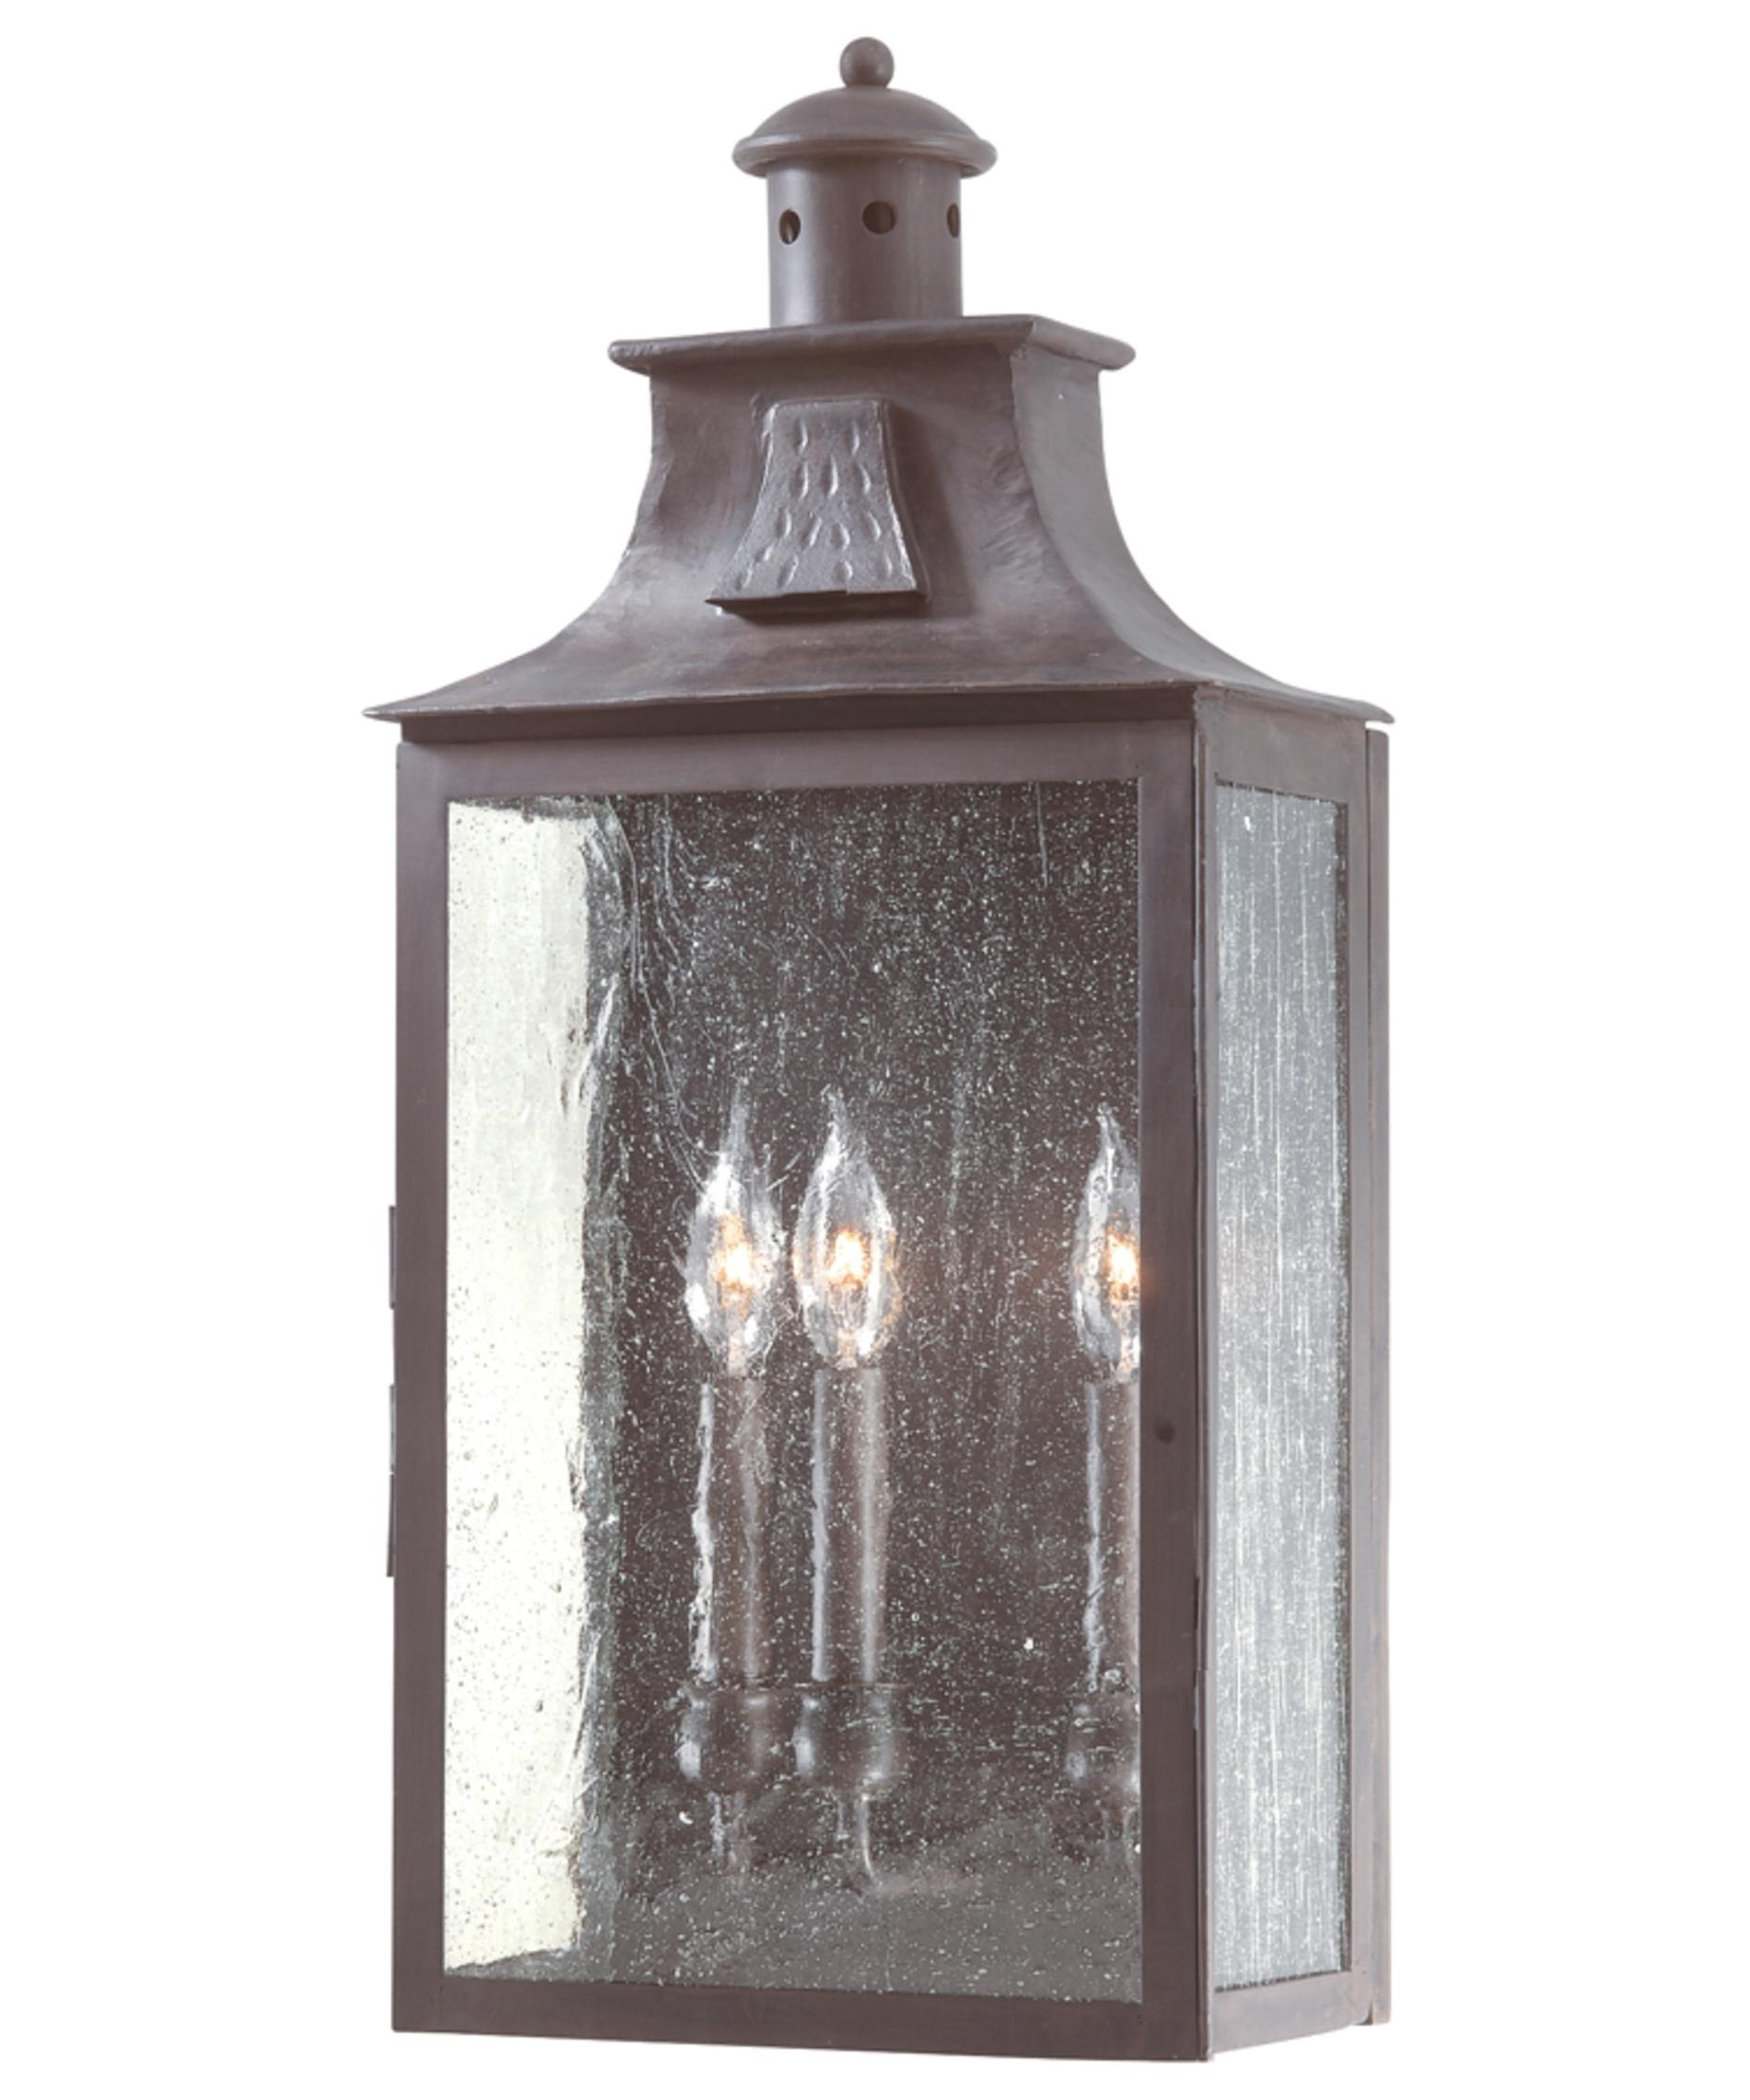 Outdoor Wall Lighting With Seeded Glass Throughout Preferred Troy Lighting B9009 Newton 11 Inch Wide 3 Light Outdoor Wall Light (View 13 of 20)